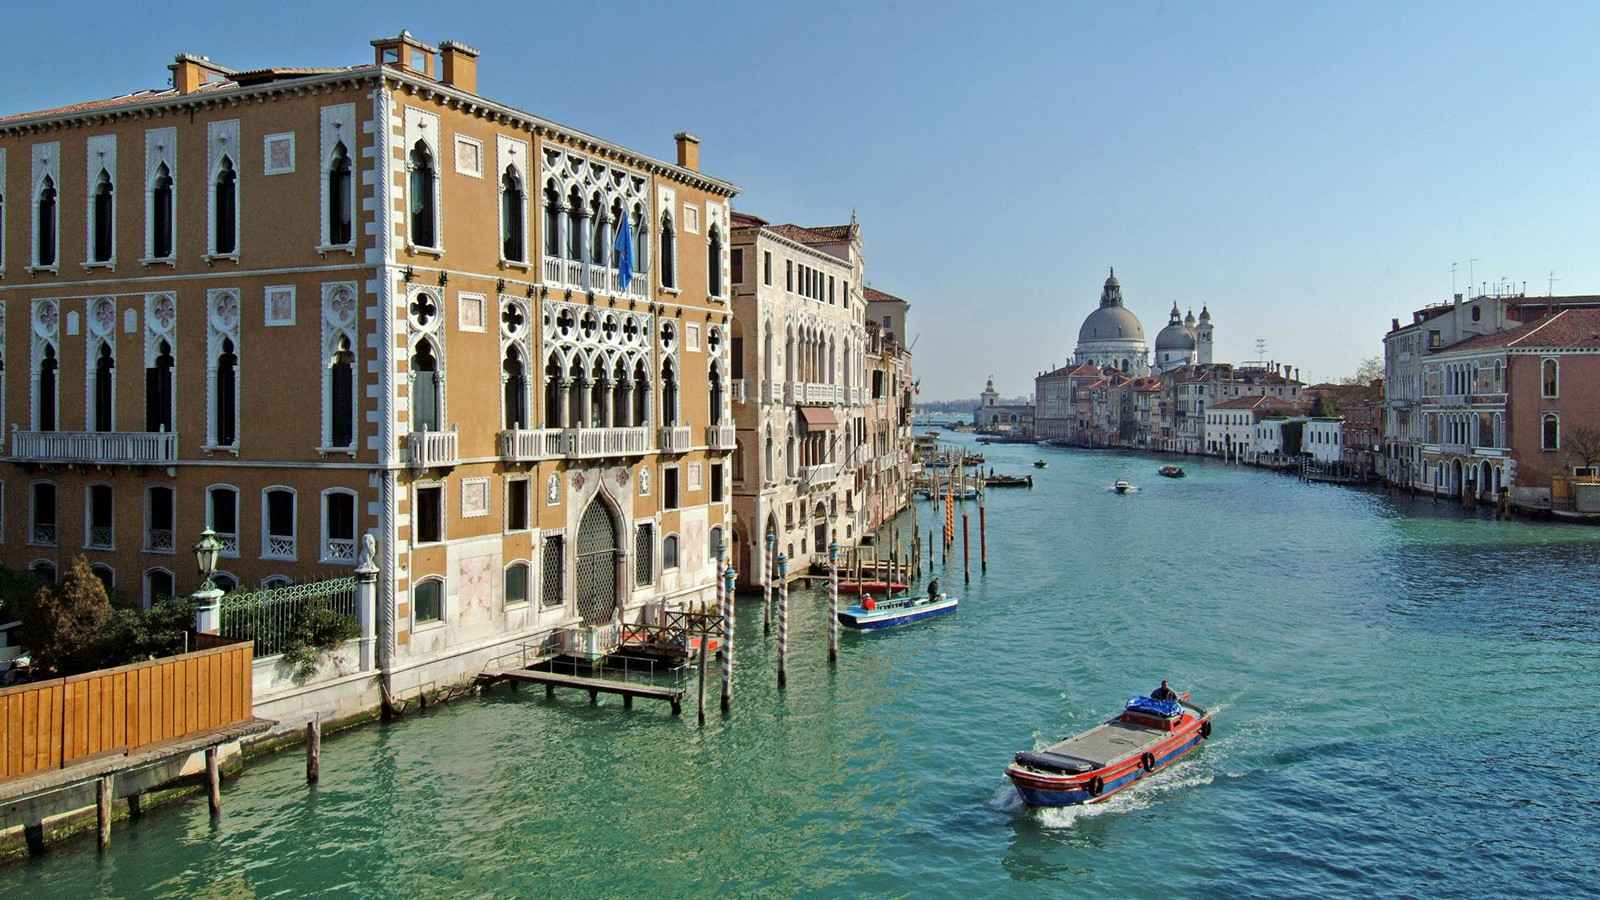 The Gritti Palace in Venice